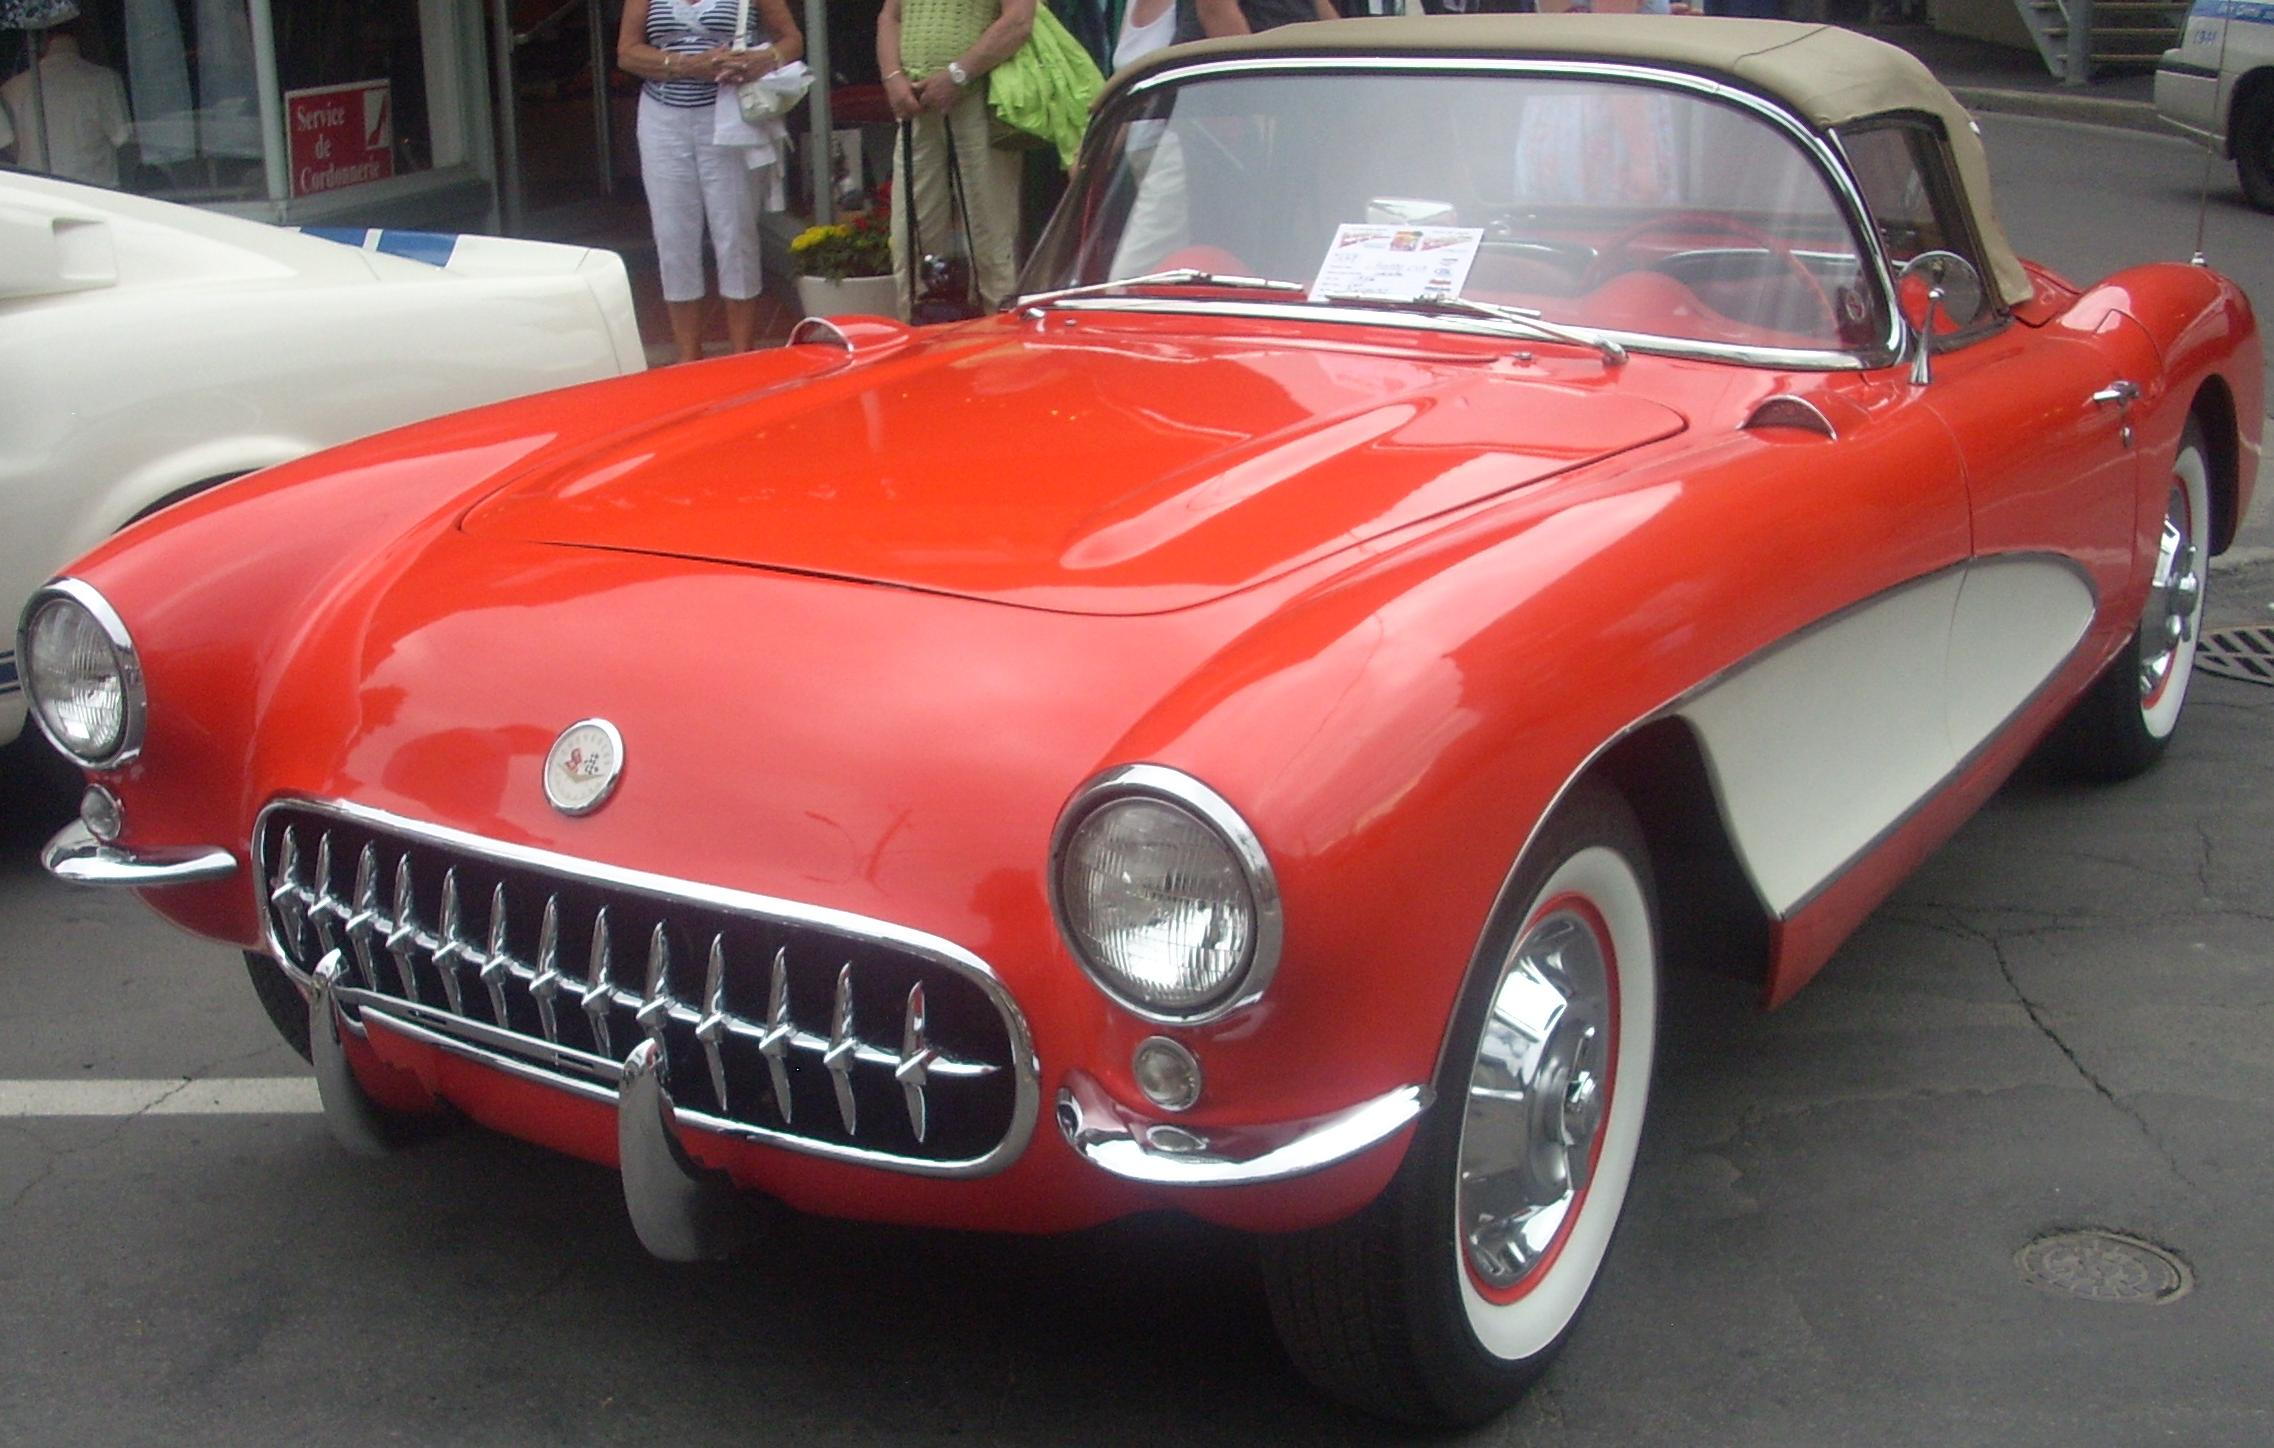 Corvette For Sale >> File:'56 Chevrolet Corvette (Cruisin' At The Boardwalk '10).jpg - Wikimedia Commons